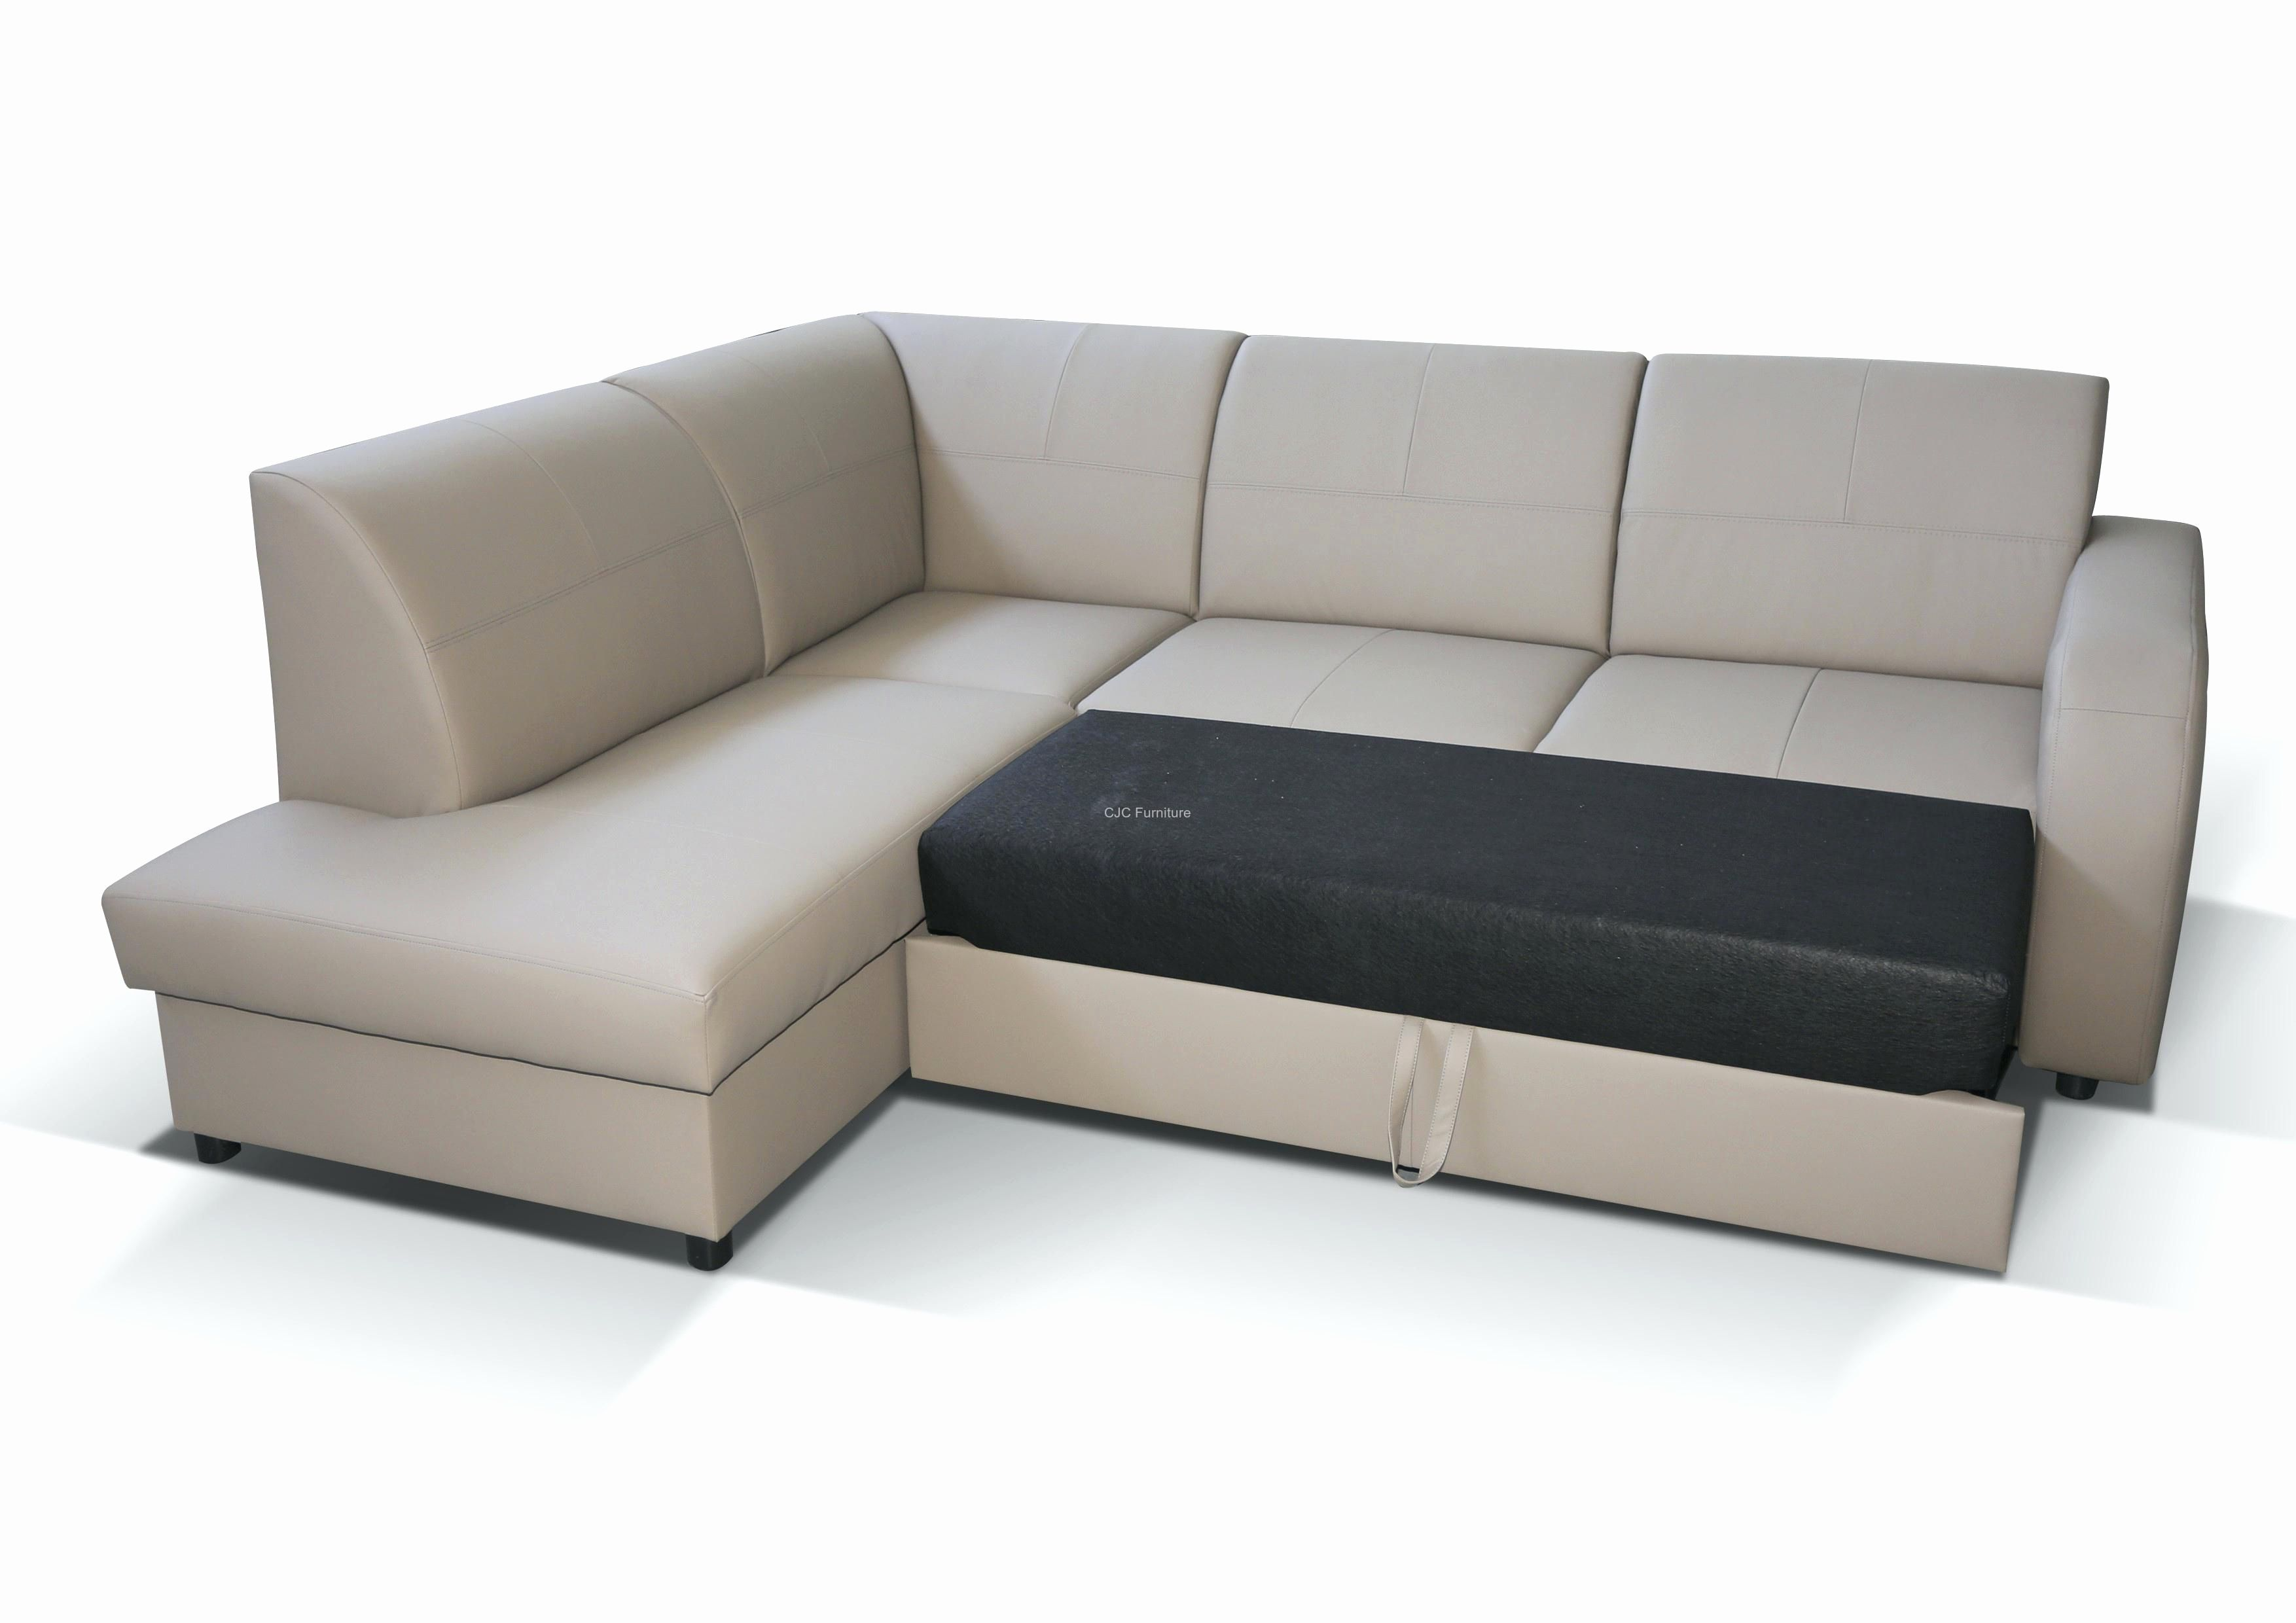 Big Sofa Usa Pin By Great Sofas On Sectional Sofa Corner Sofa Bed With